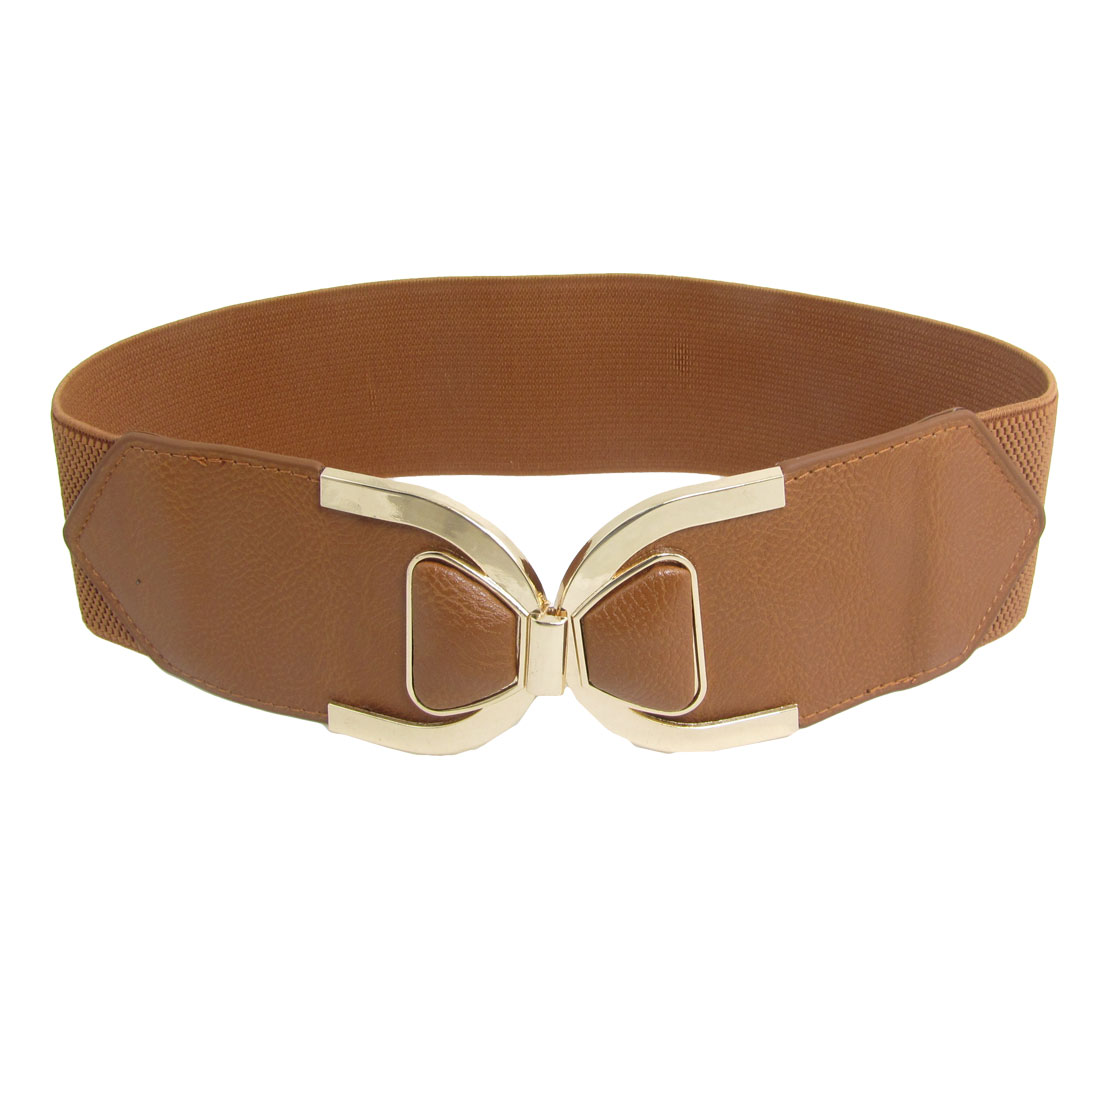 Ladies Textured Faux Leather Interlocking Buckle Brown Cinch Belt